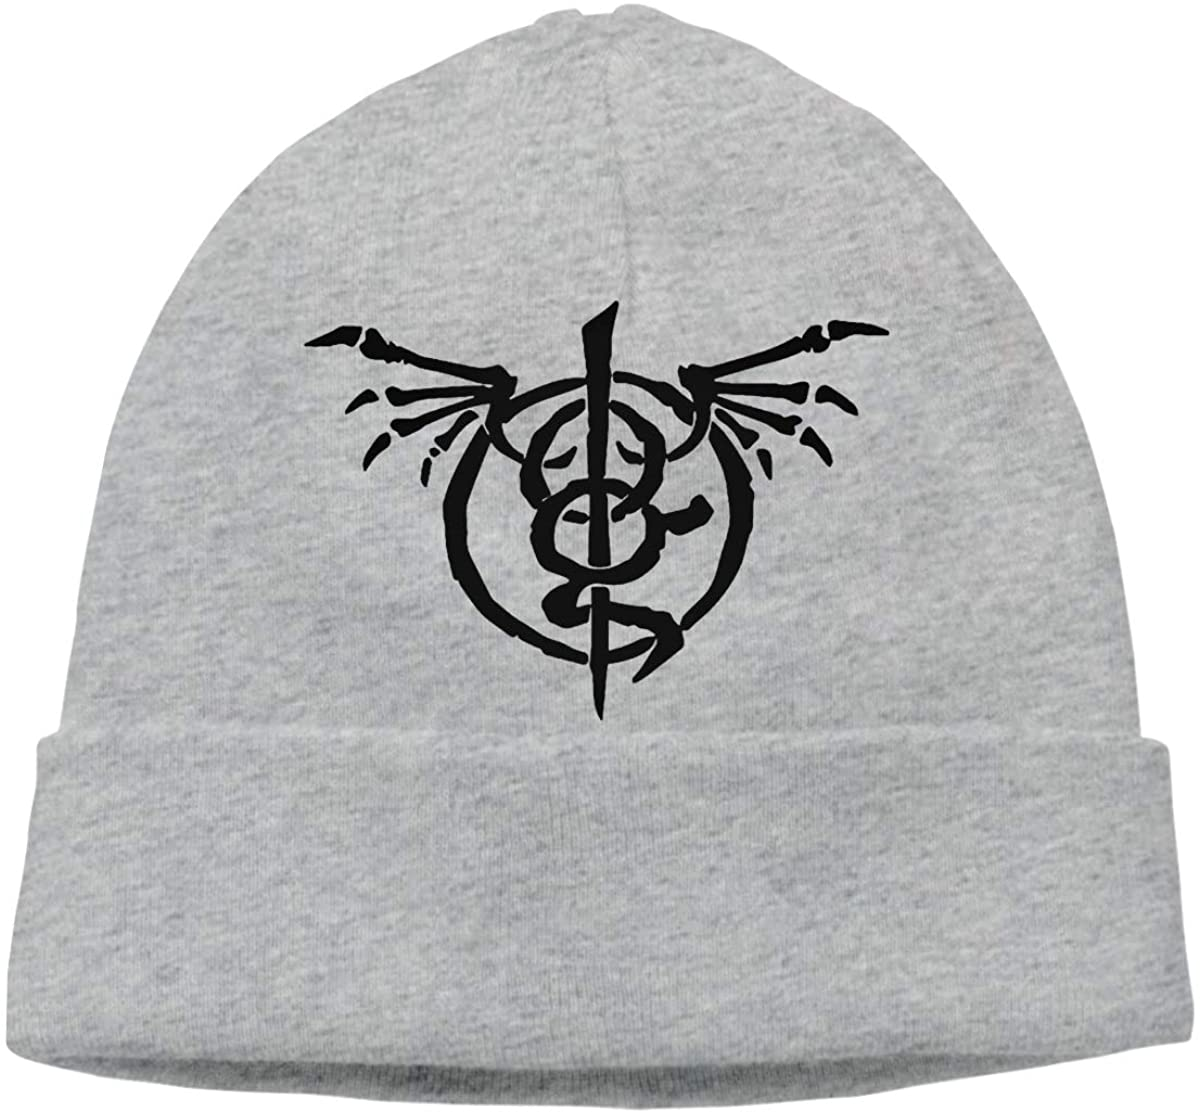 Lamb of God Logo Comfortable to Go Out Hedging Cap Hat Chapeau Headgear Gray